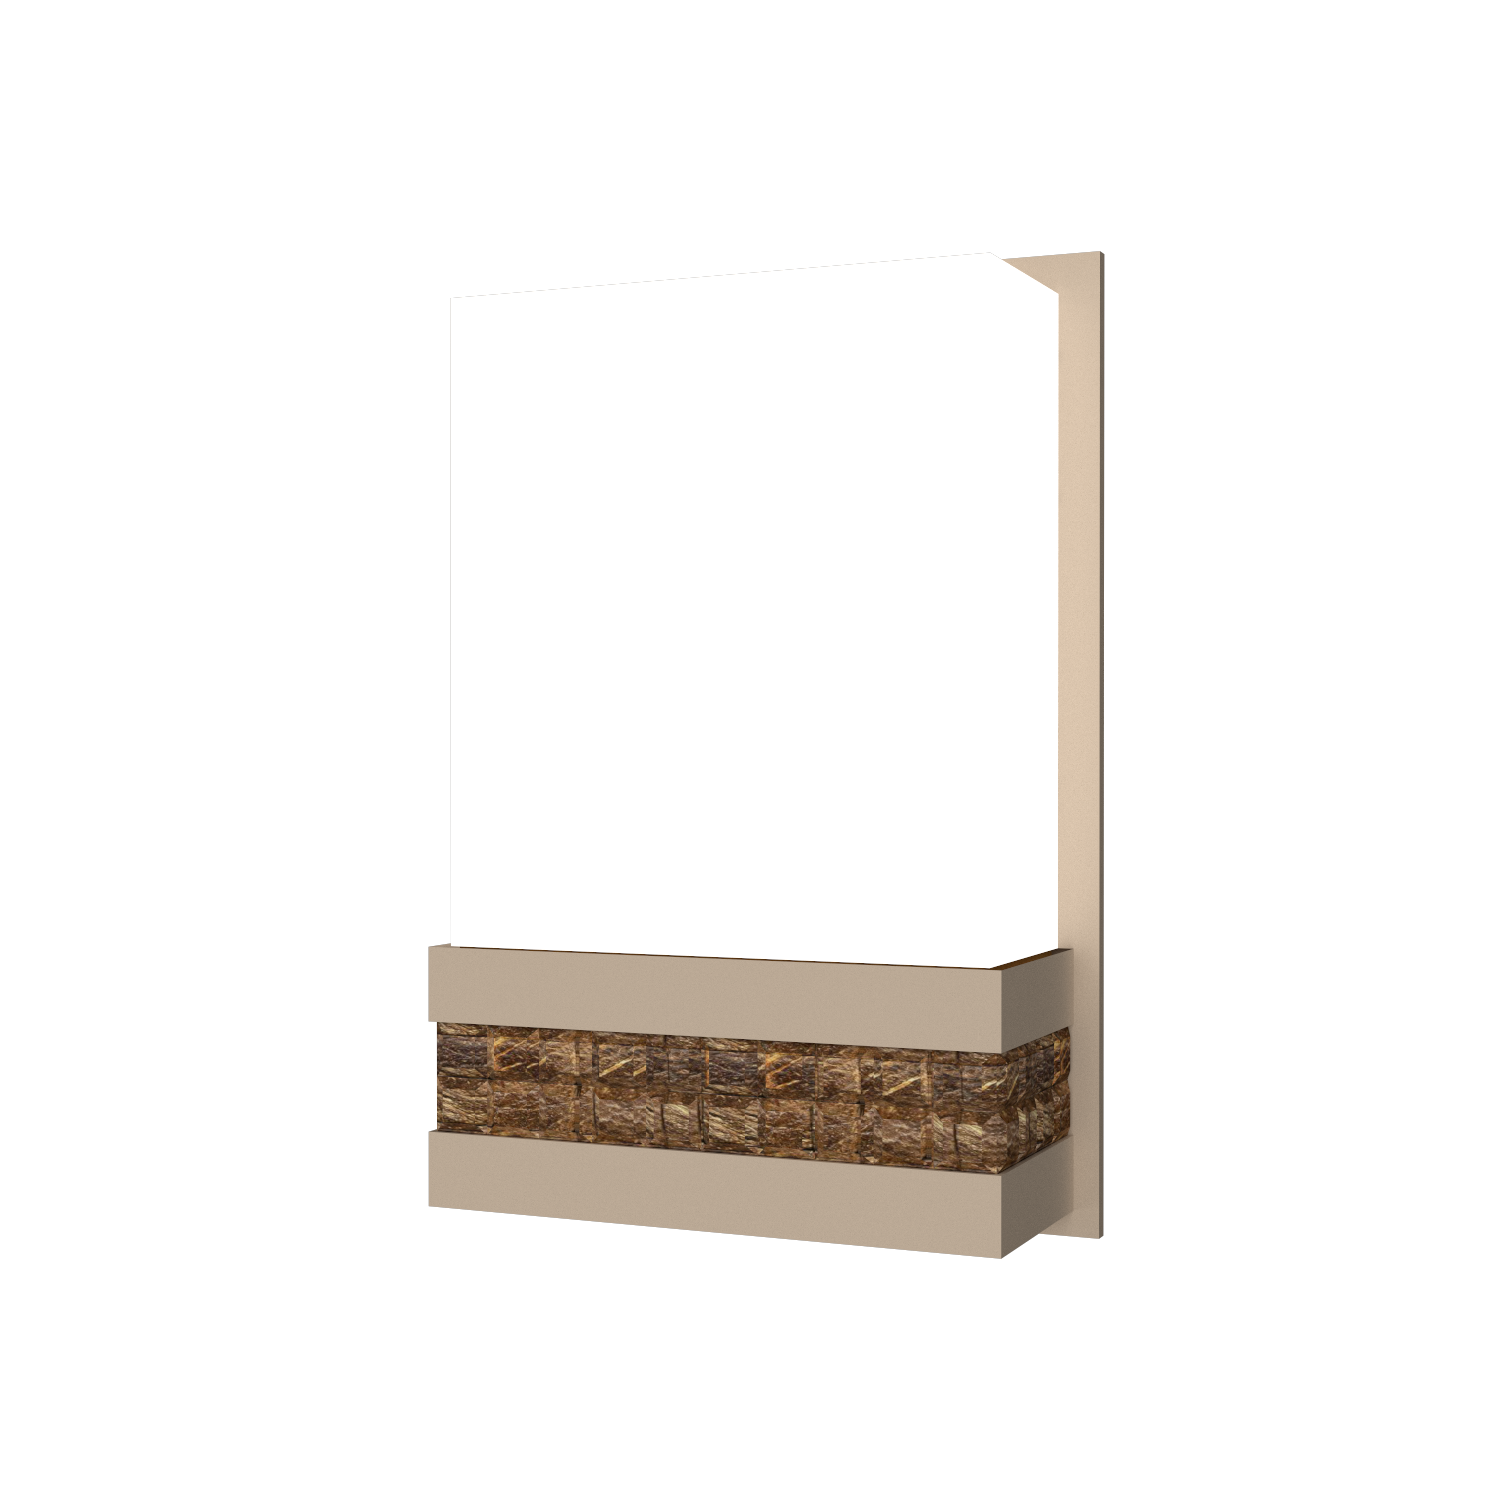 Wall Lamp Accord Pastilhada 443 - Pastilhada Line Accord Lighting | 15. Cappuccino